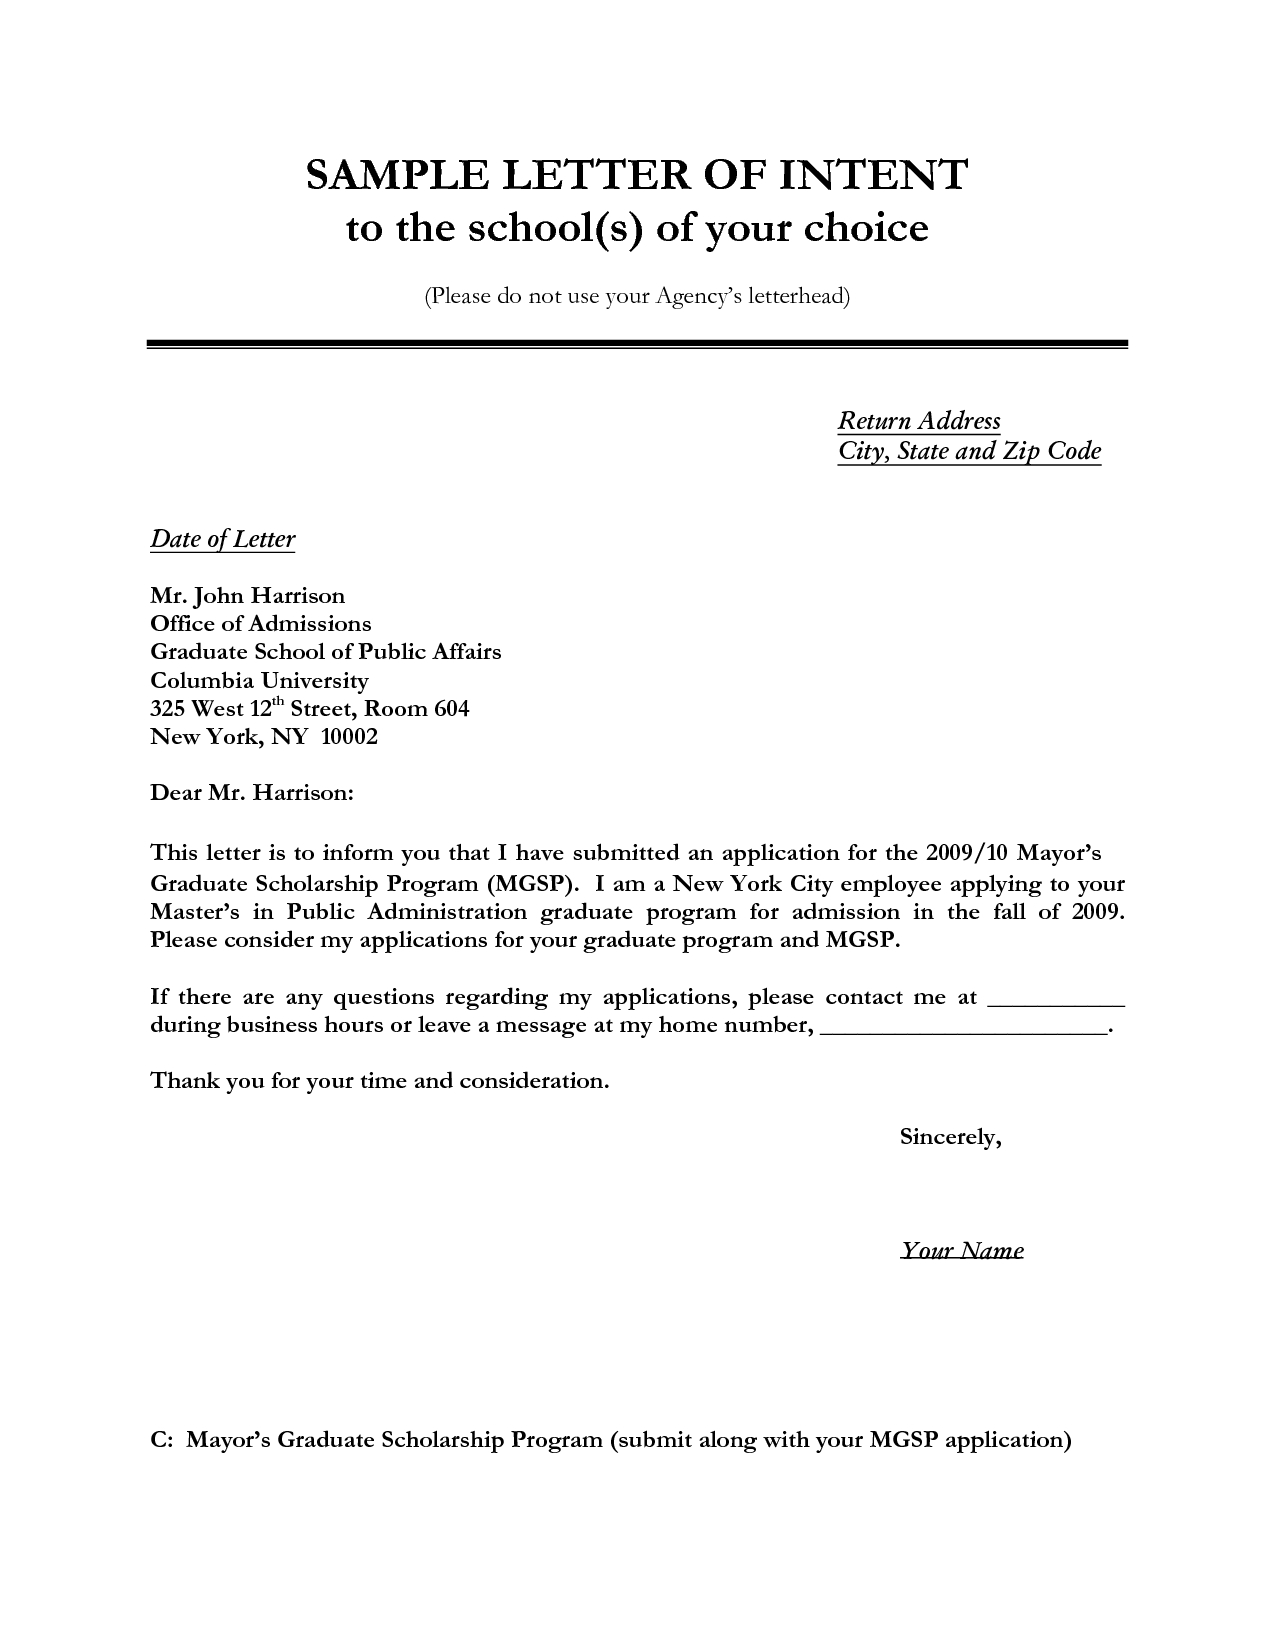 Letter Of Intent to Purchase Equipment Template - Letter Of Intent Sample